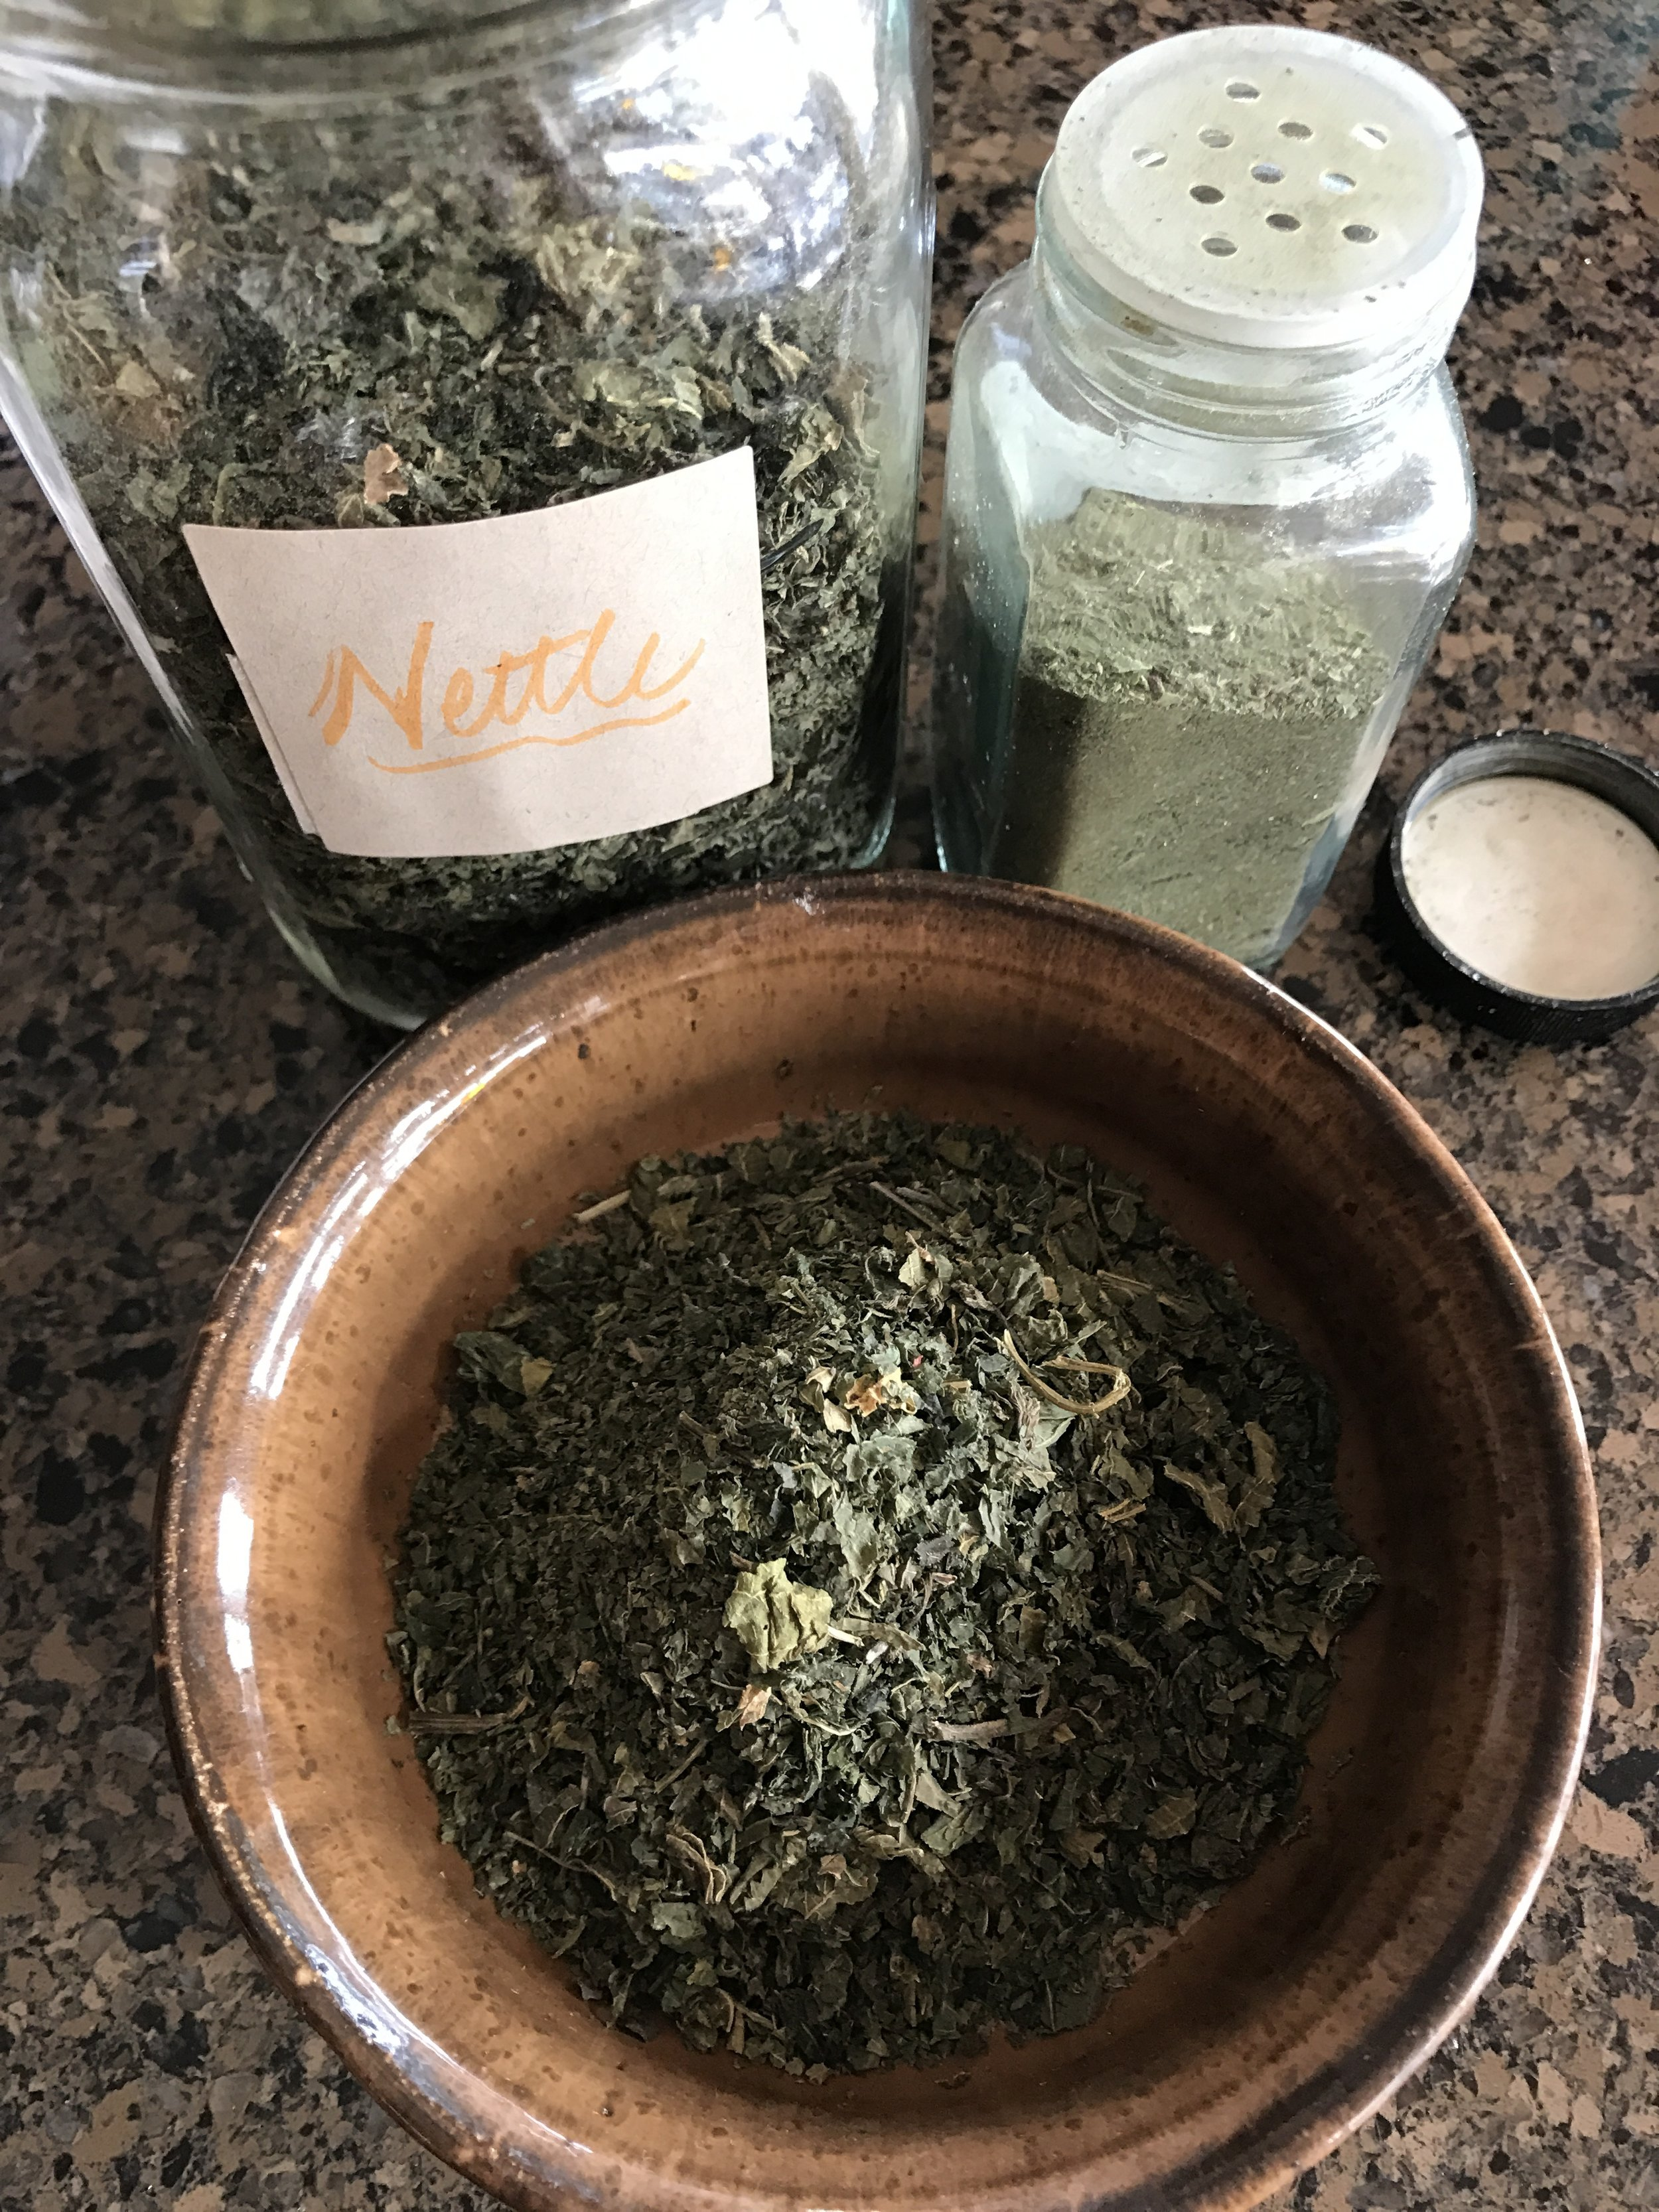 Here's a picture of dried Nettle leaves and the powdered counter part!